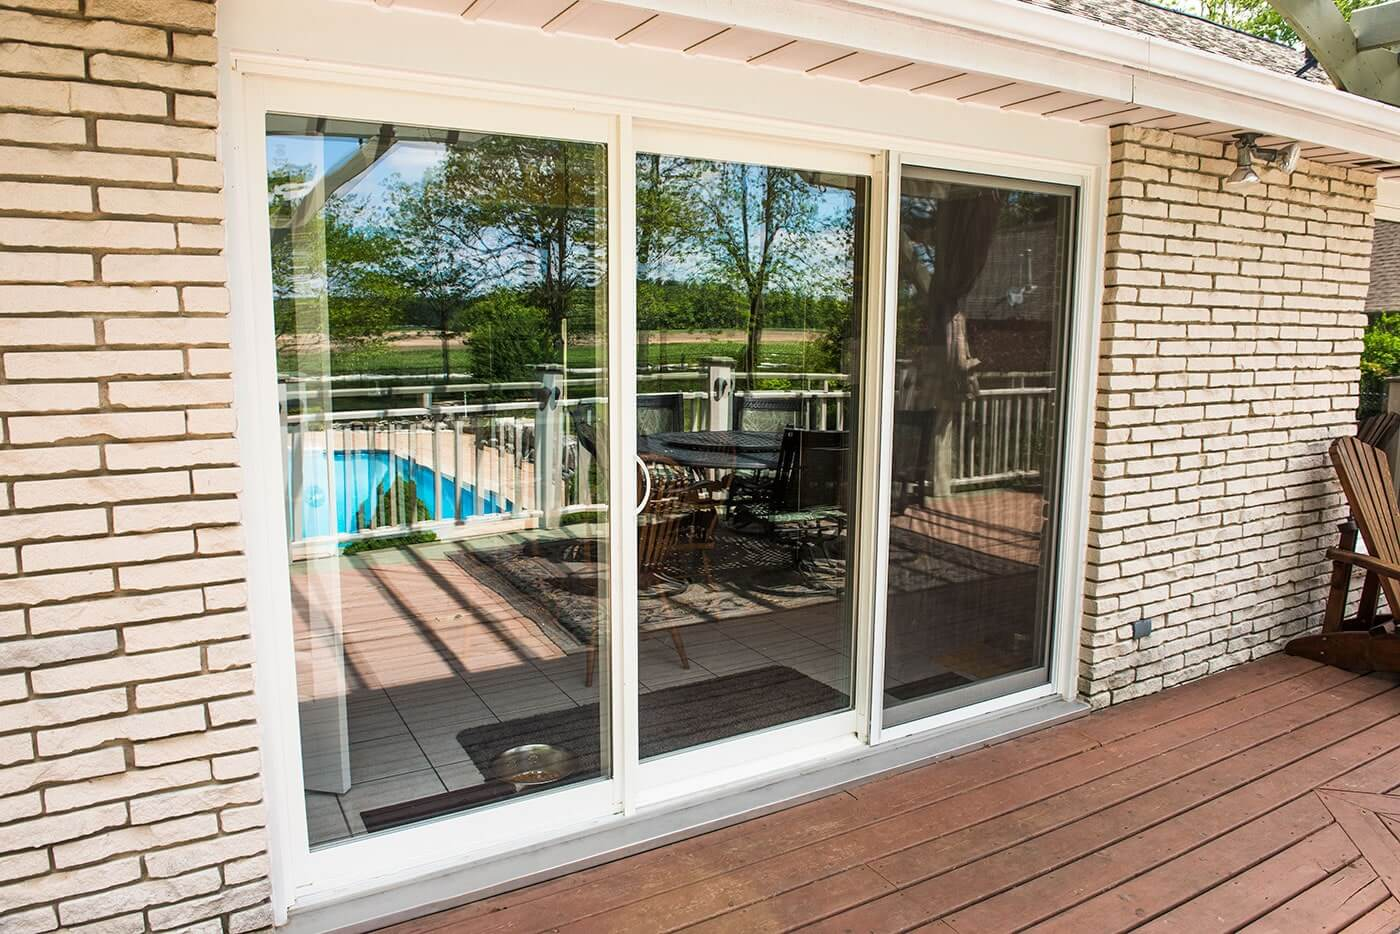 Sliding Glass Patio Doors With White Trim Custom Manufactured For Bungalow  Home